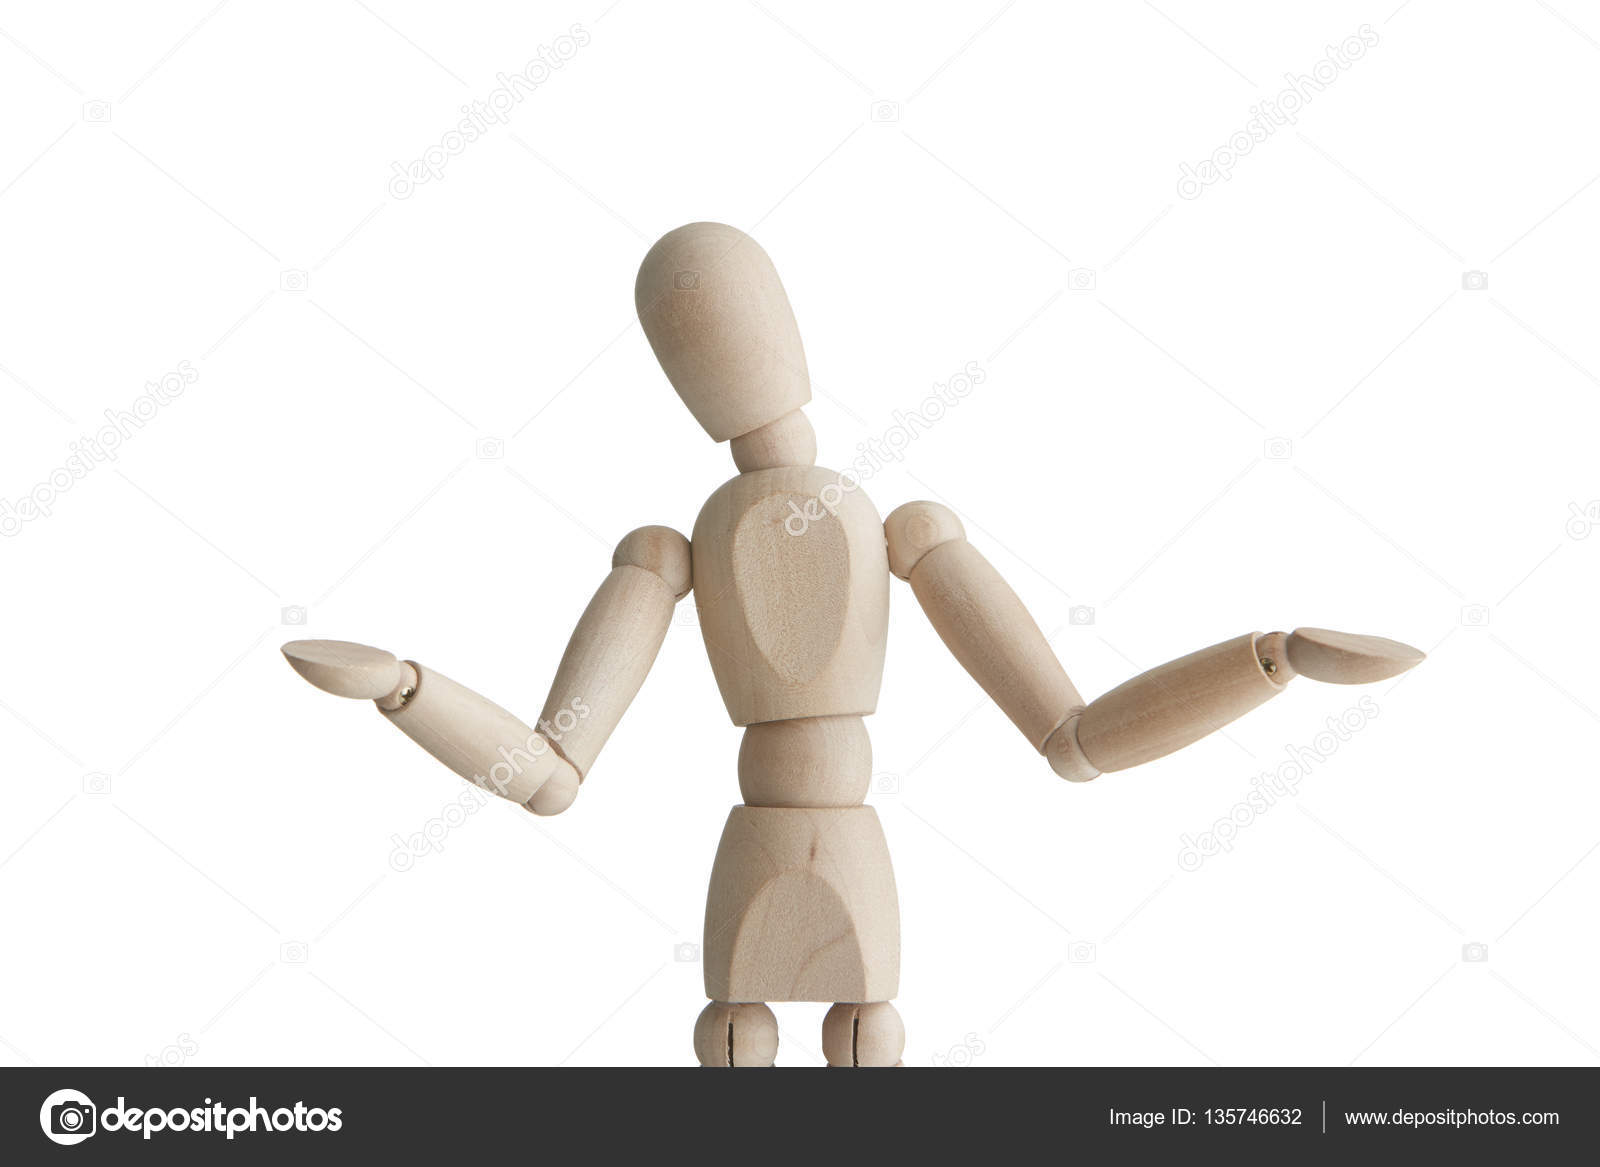 wooden mannequin with uncertain pose stock photo 123ultra 135746632